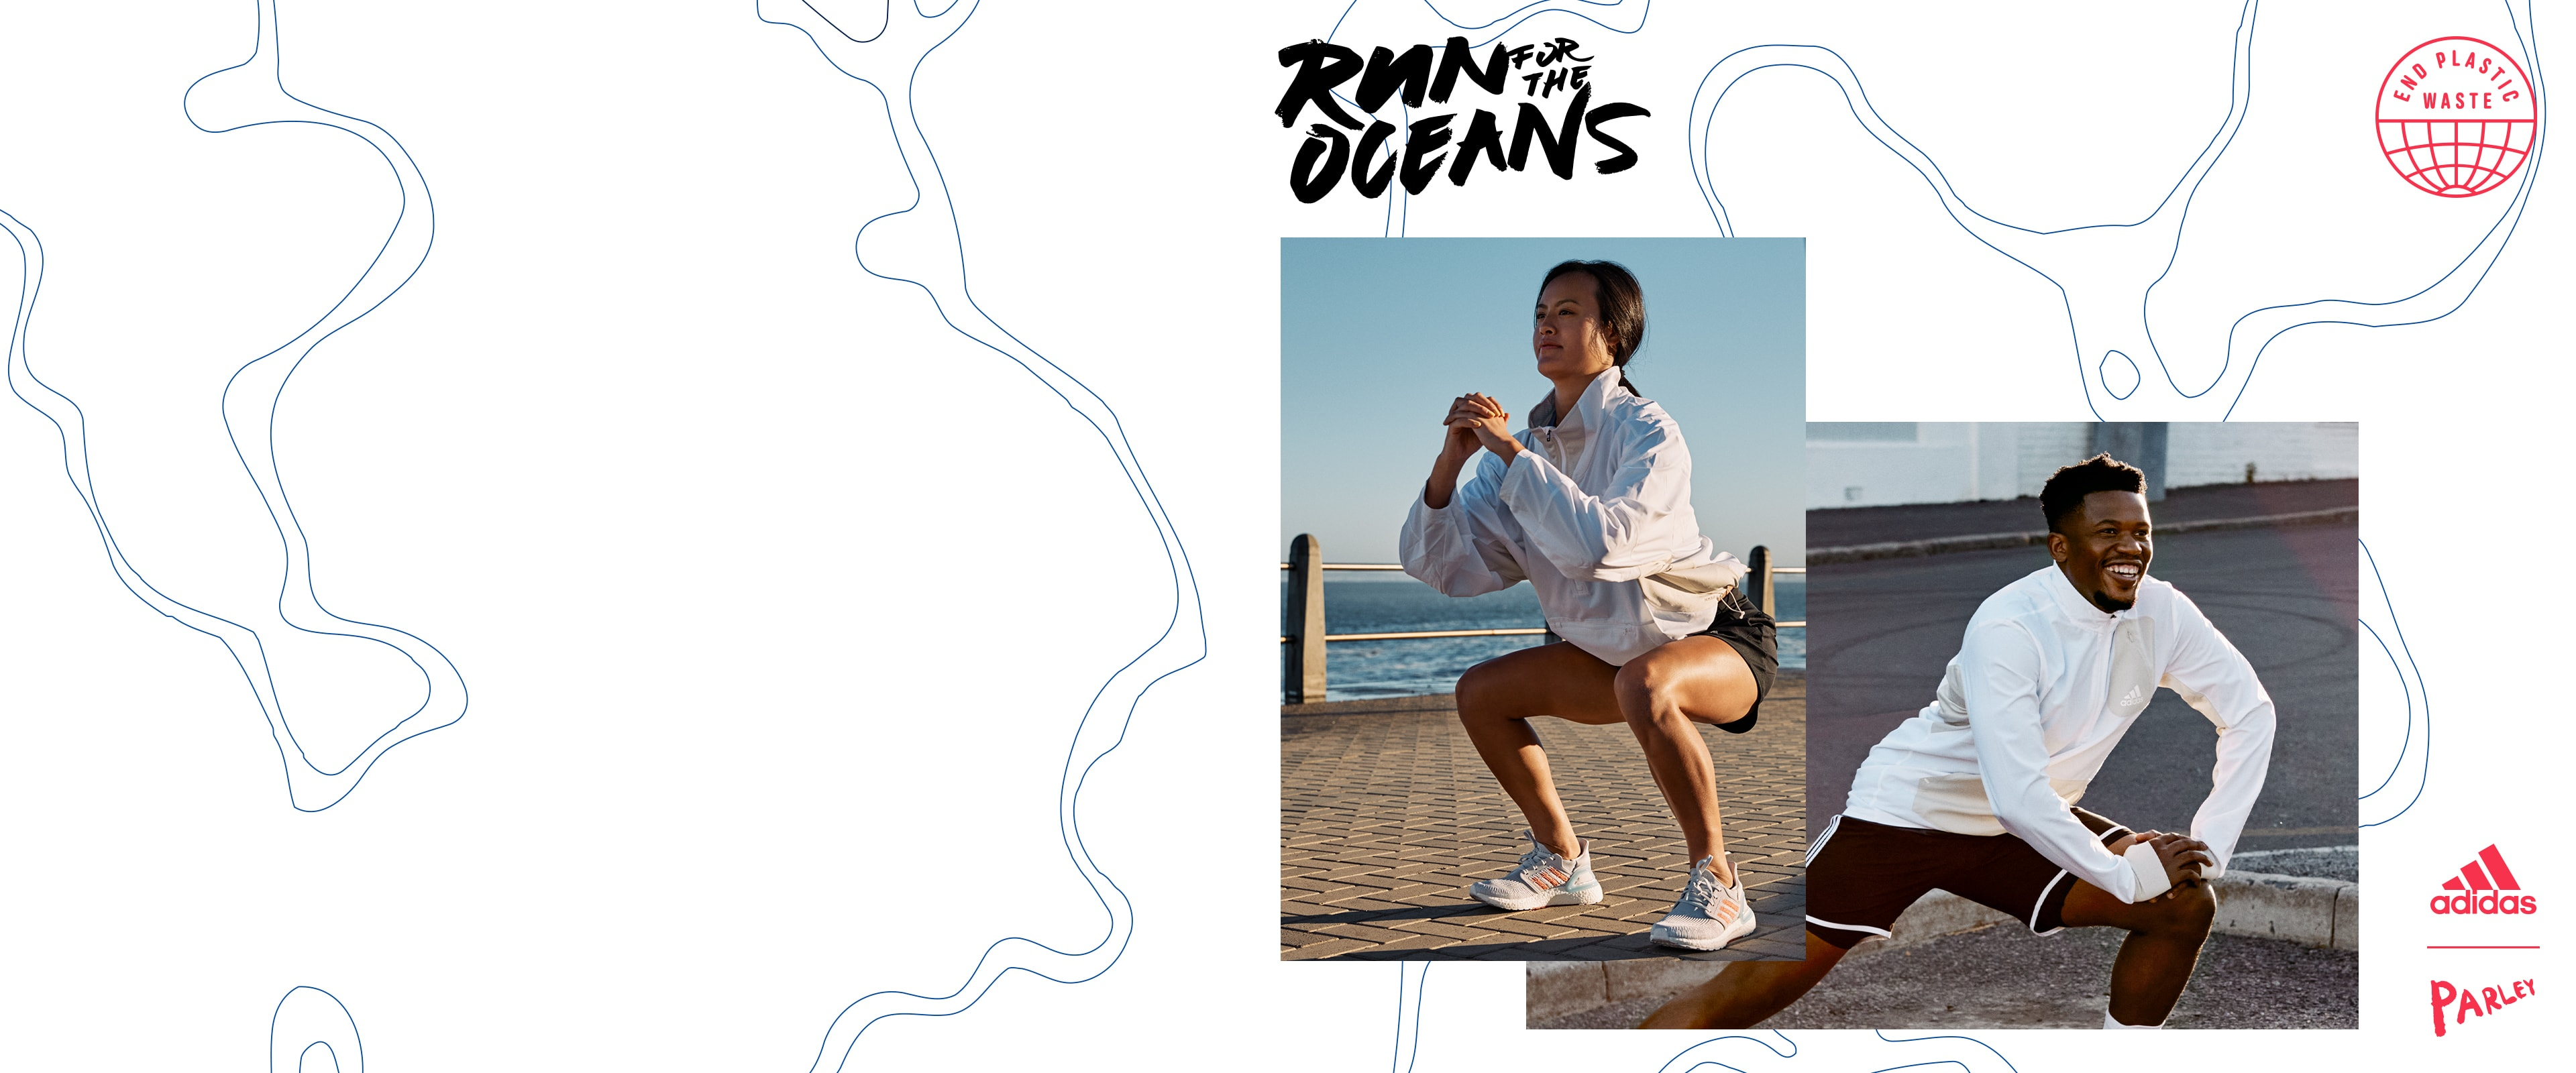 A man and woman are warming up to get ready for Run For The Oceans